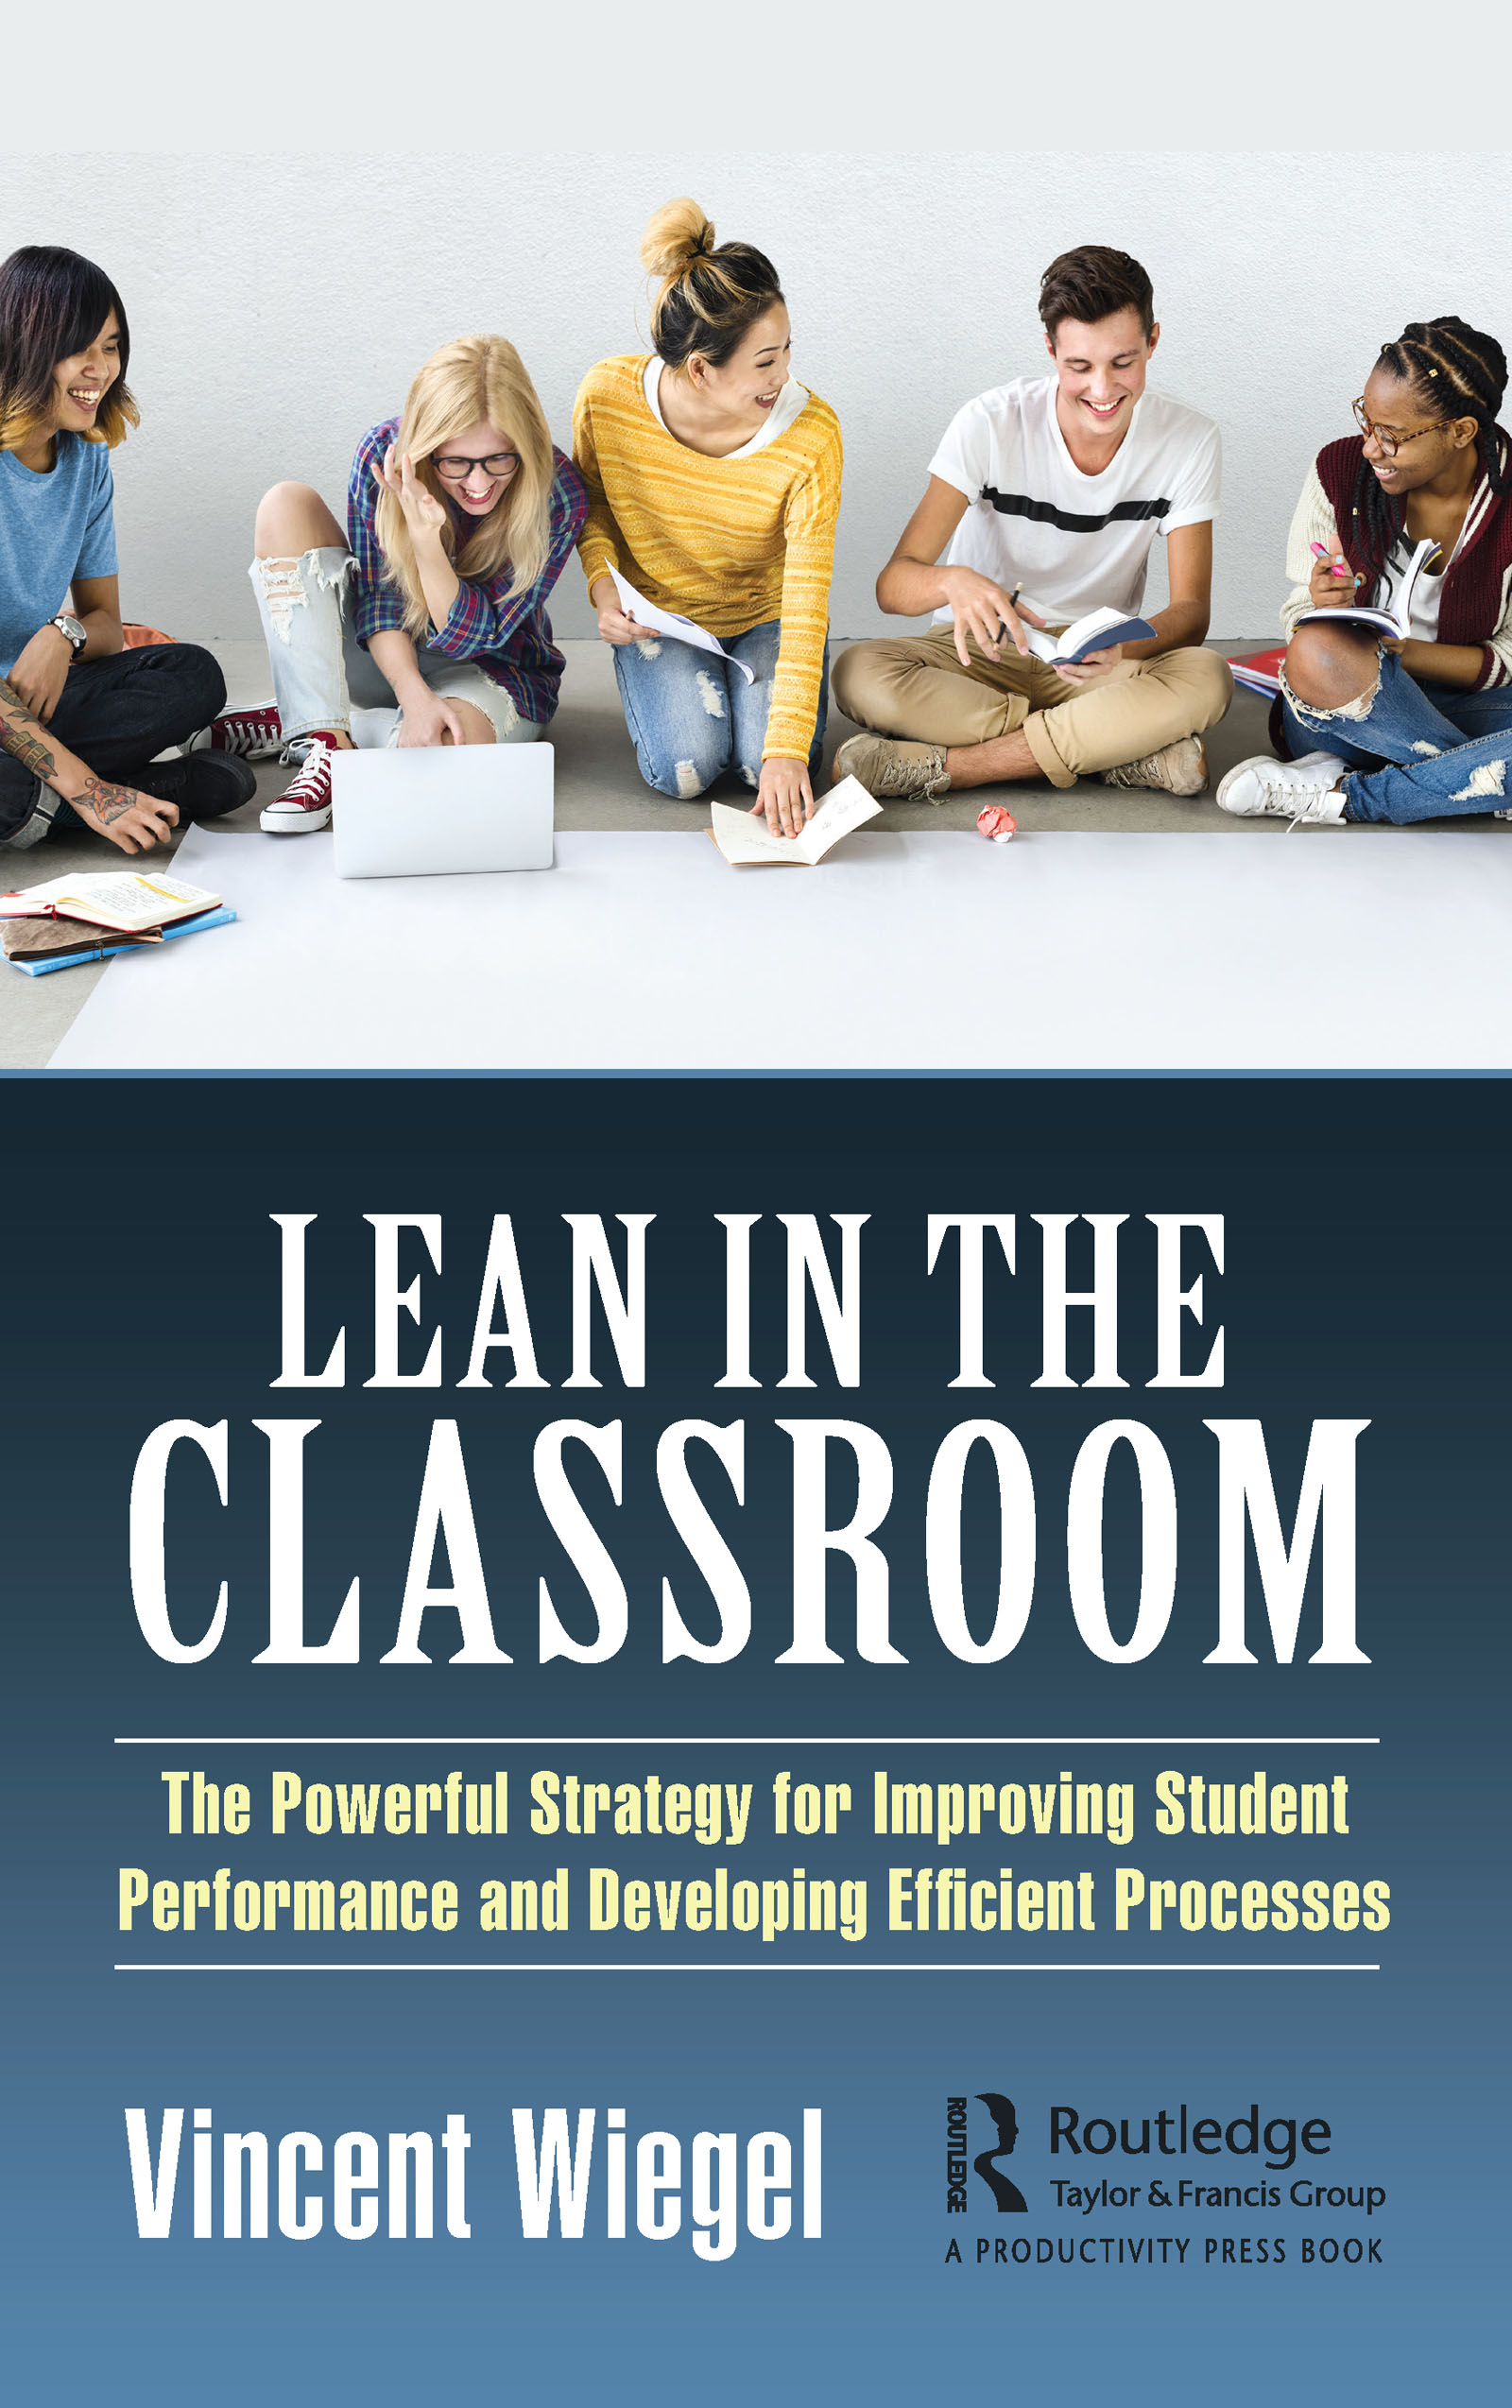 Lean in the Classroom: The Powerful Strategy for Improving Student Performance and Developing Efficient Processes book cover